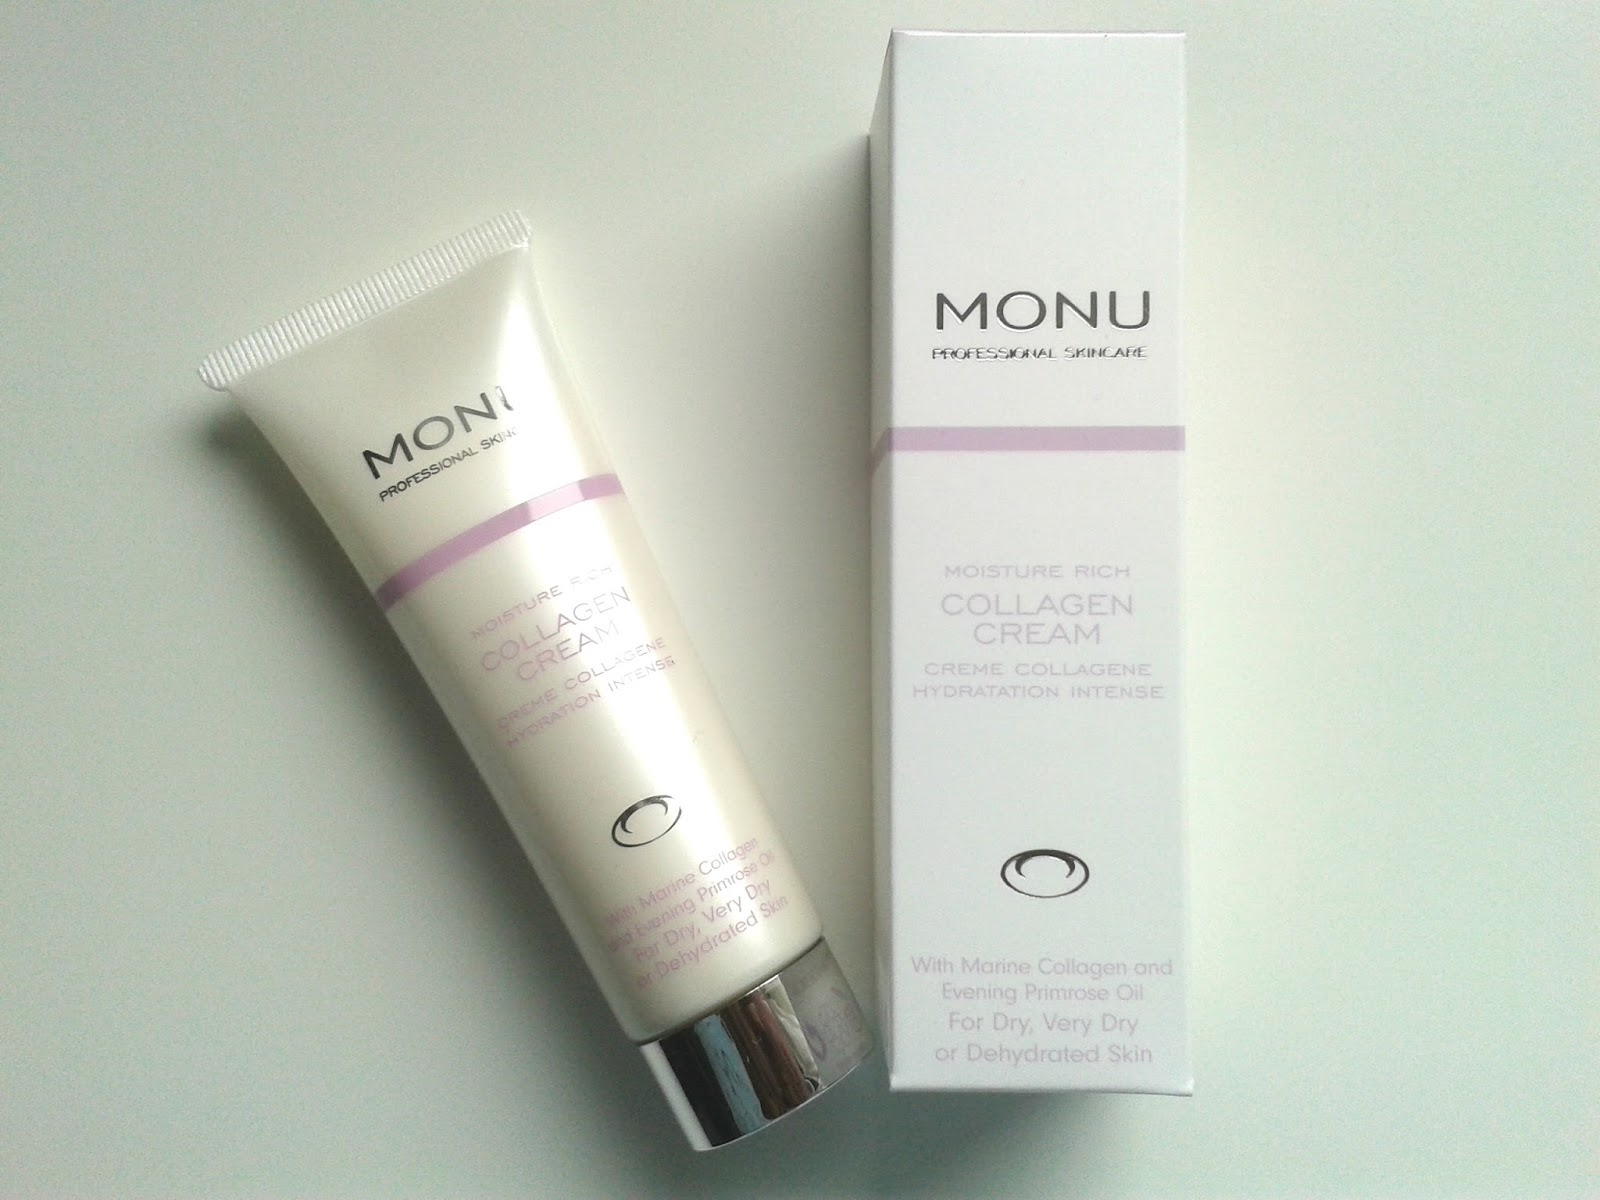 MONU Professional Skincare Collagen Cream Review Swatch